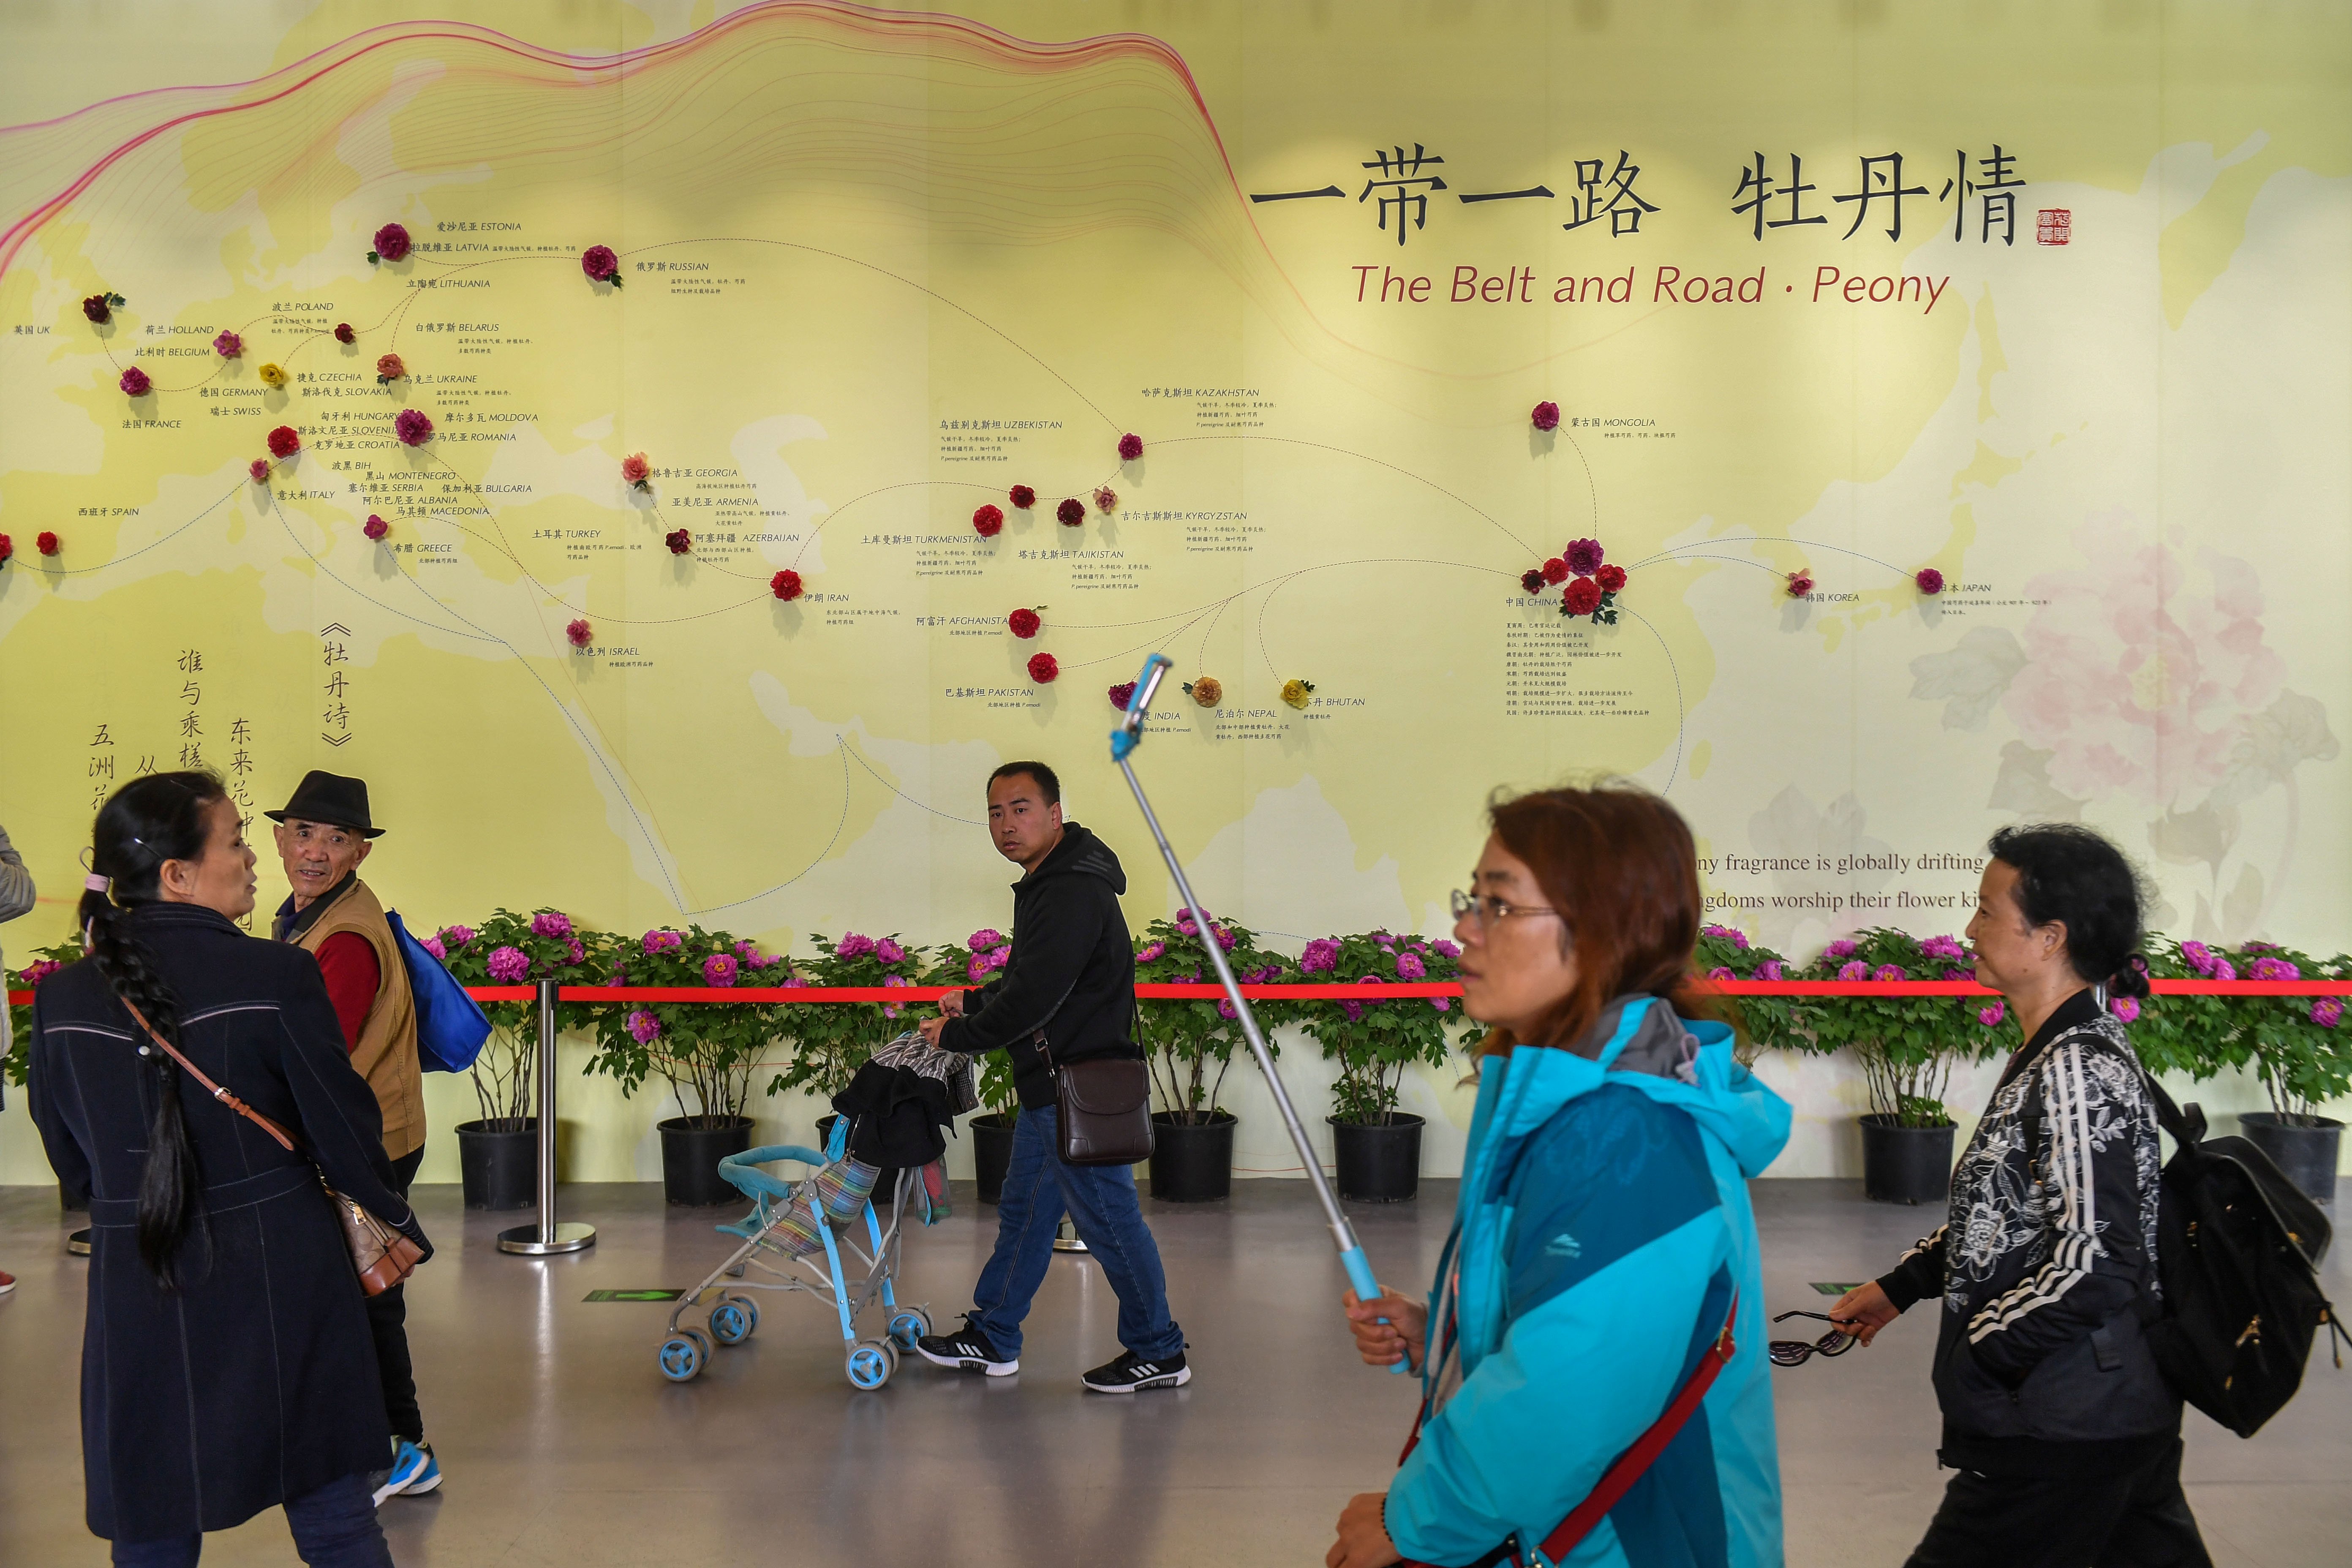 Visitors walk past a wall with a map showing the species of peony in Belt and Road Initiative (BRI) countries, at horticultural exhibition Beijing Expo 2019, in Beijing, China April 29, 2019. Picture taken April 29, 2019. REUTERS/Stringer